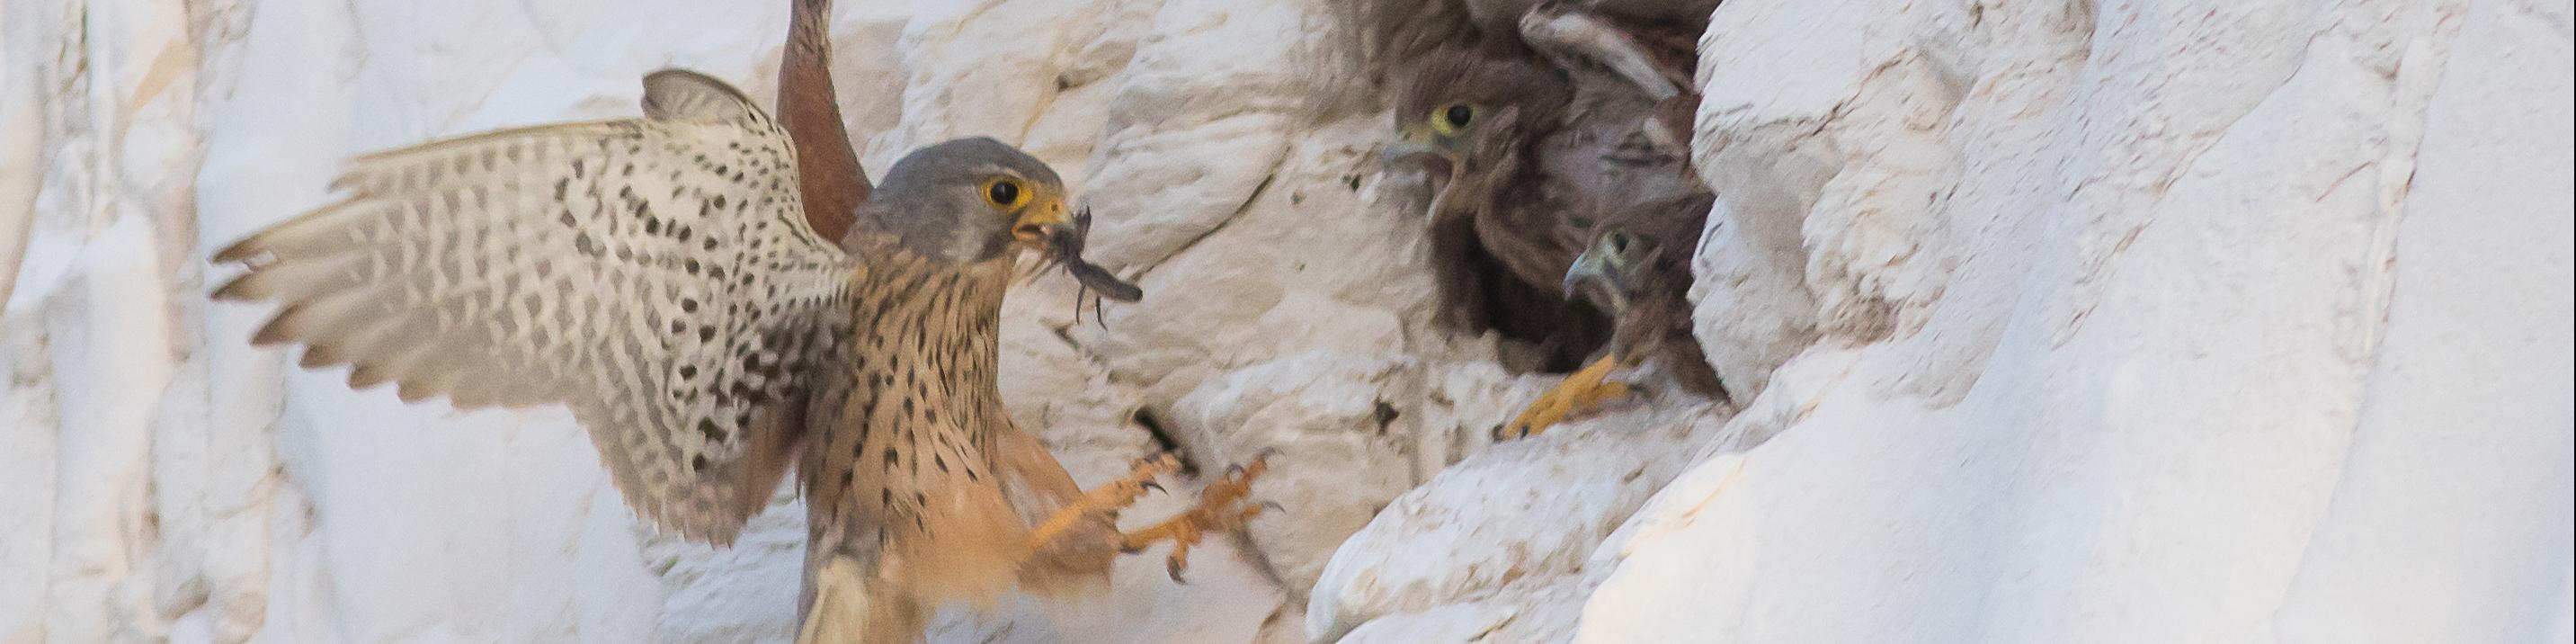 Lesser kestrel (Falco naumanni) bring food to his offsprings, Israel